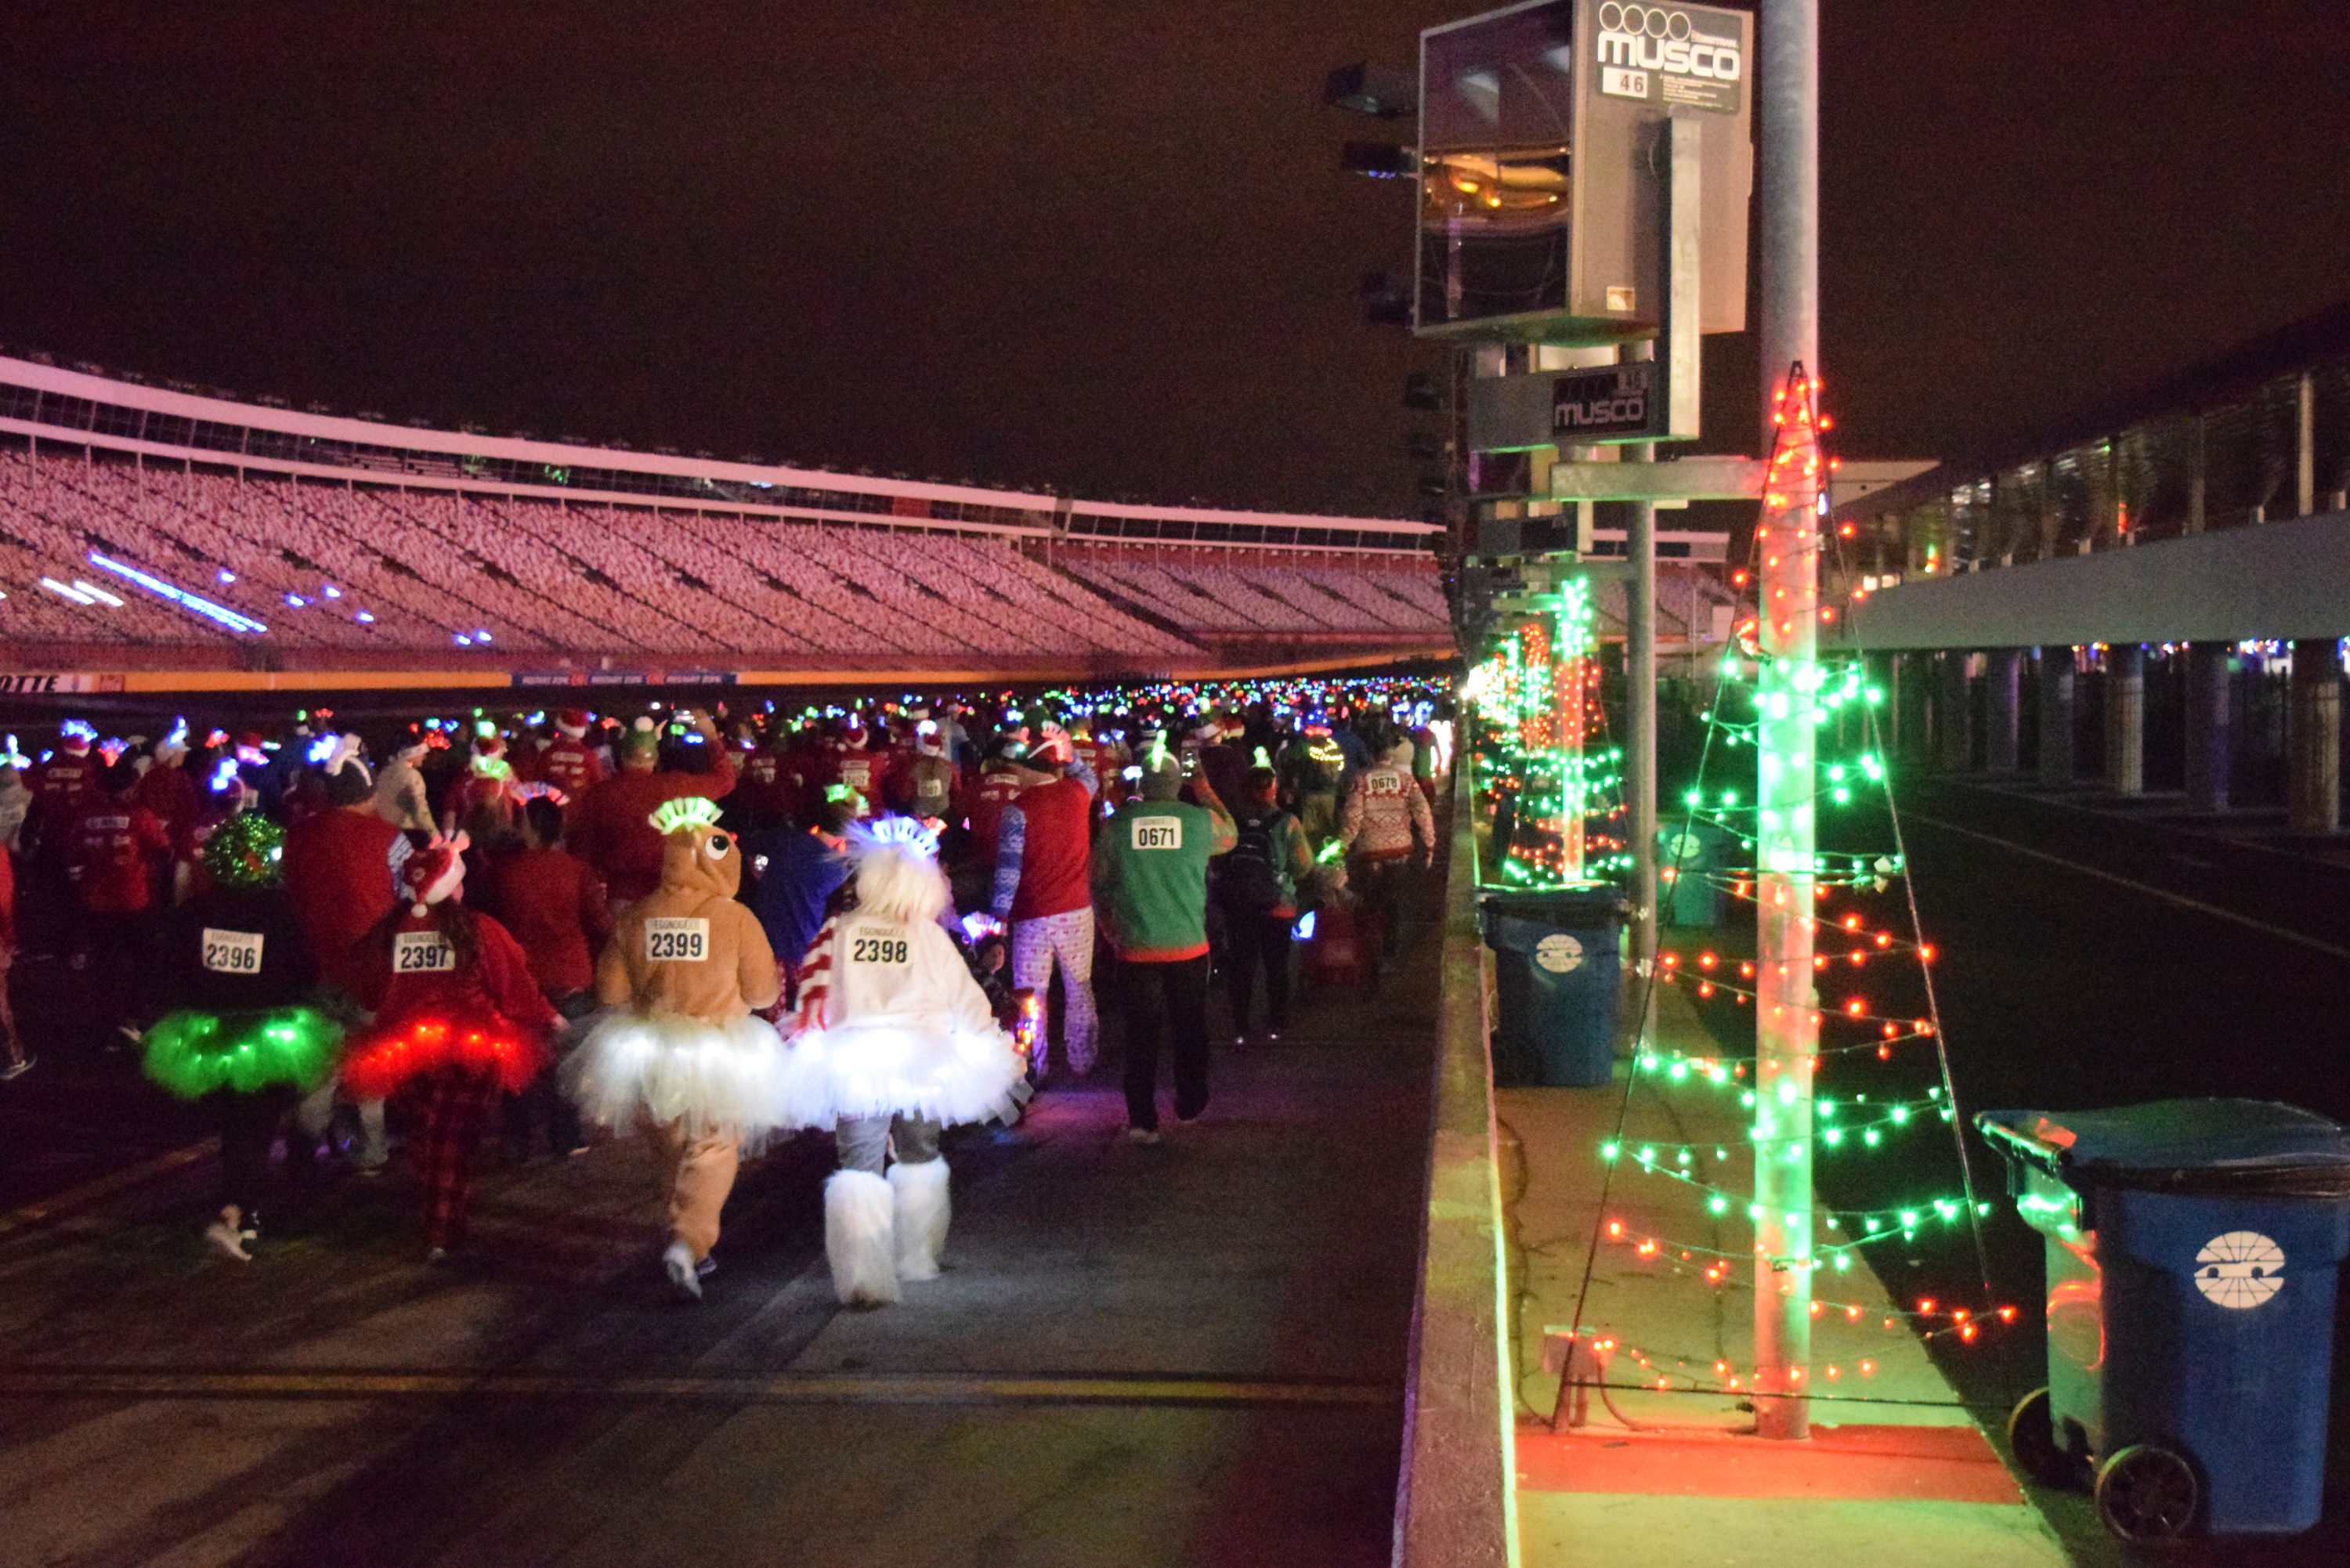 Charlotte Motor Speedway Christmas Lights.10 Must See Attractions At Speedway Christmas Presented By